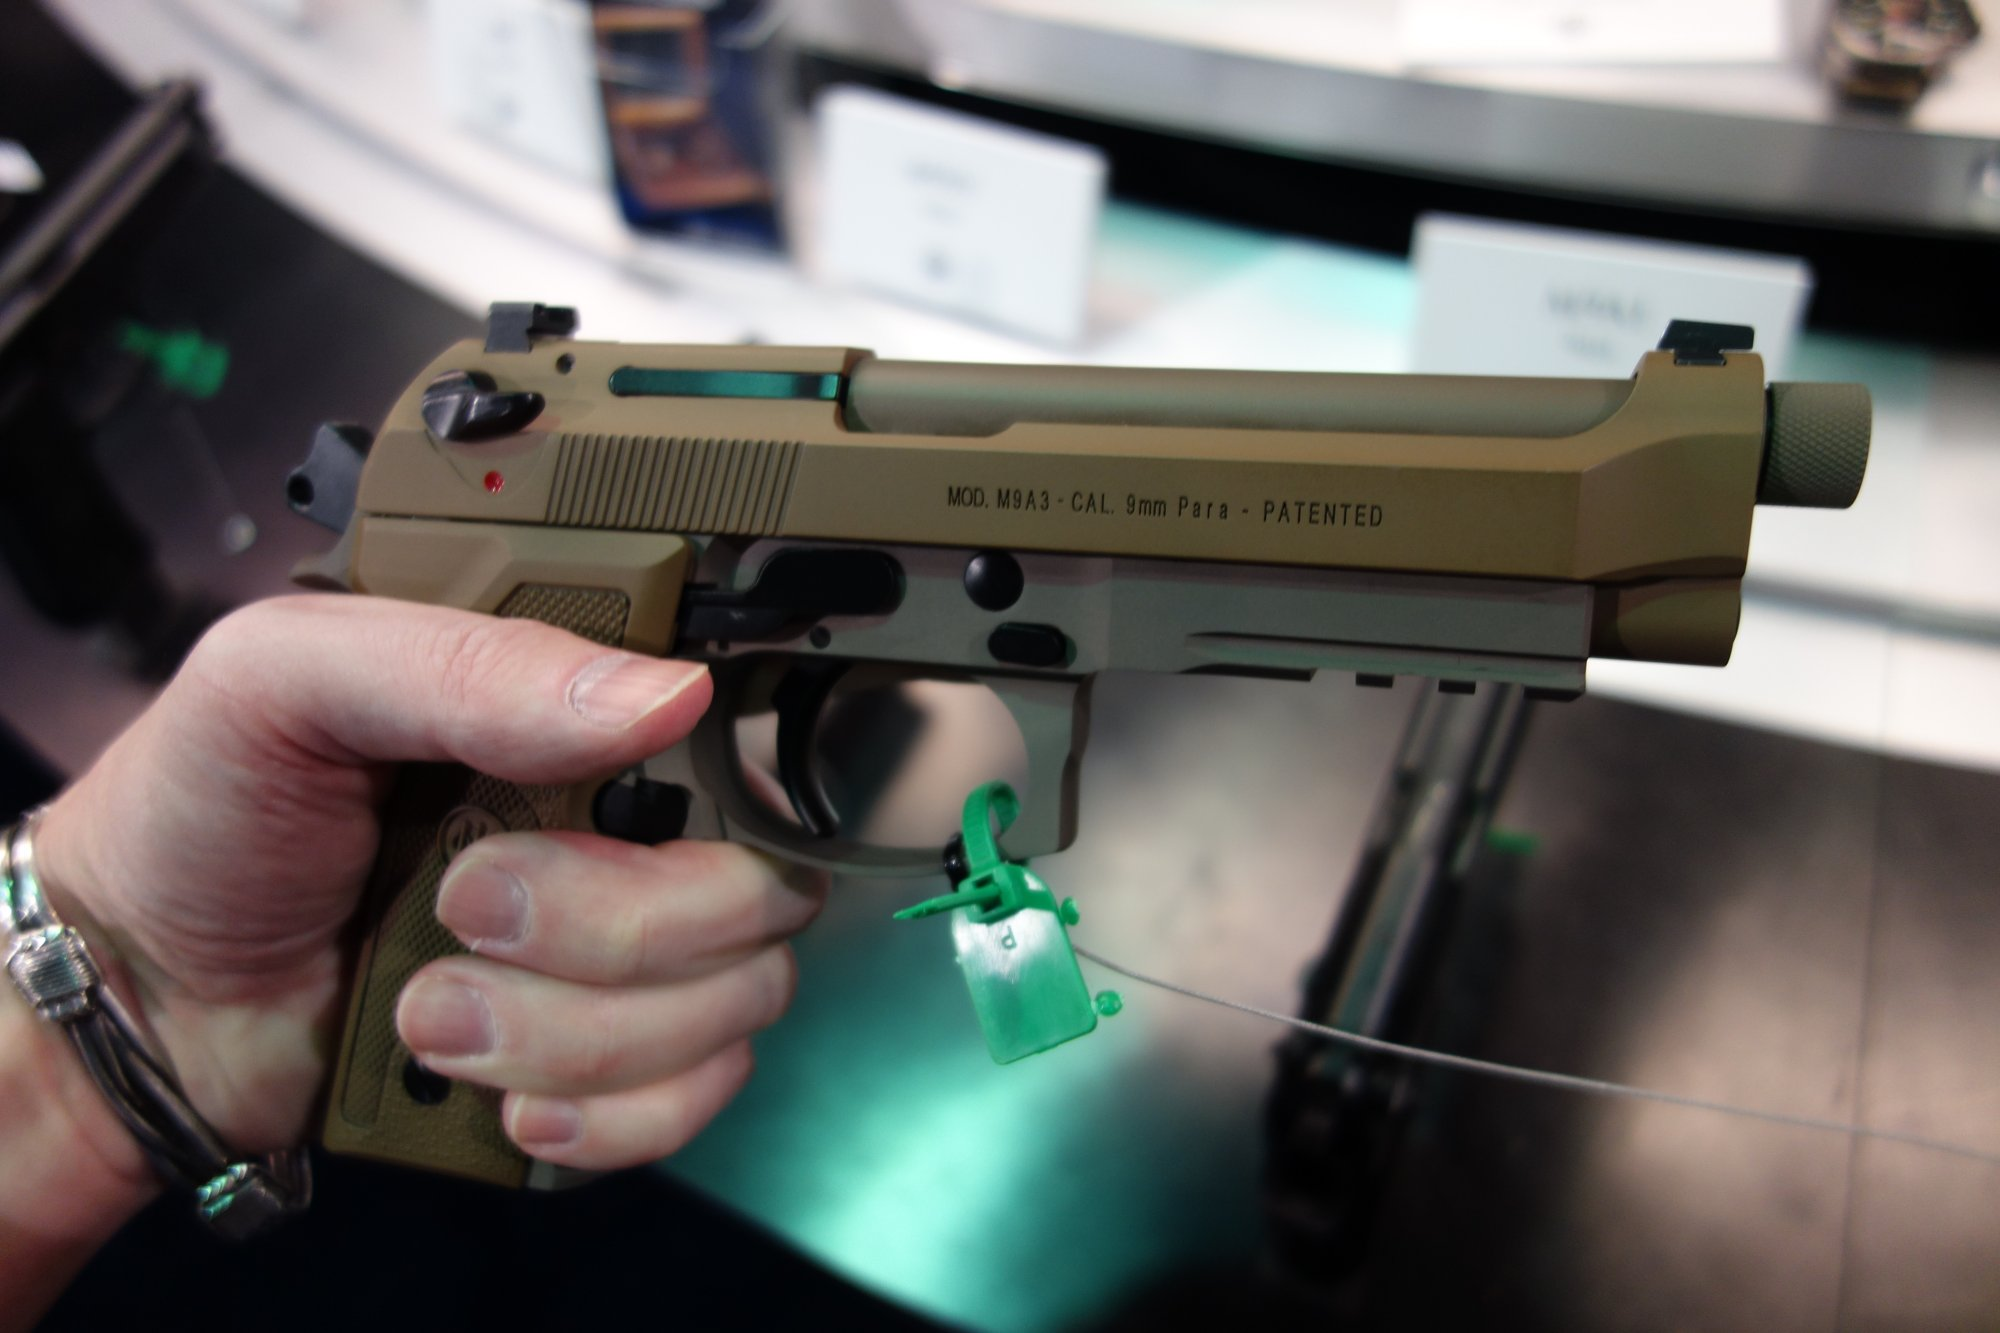 Beretta M9A3 High-Capacity 9mm Combat/Tactical Pistol with 17-Round